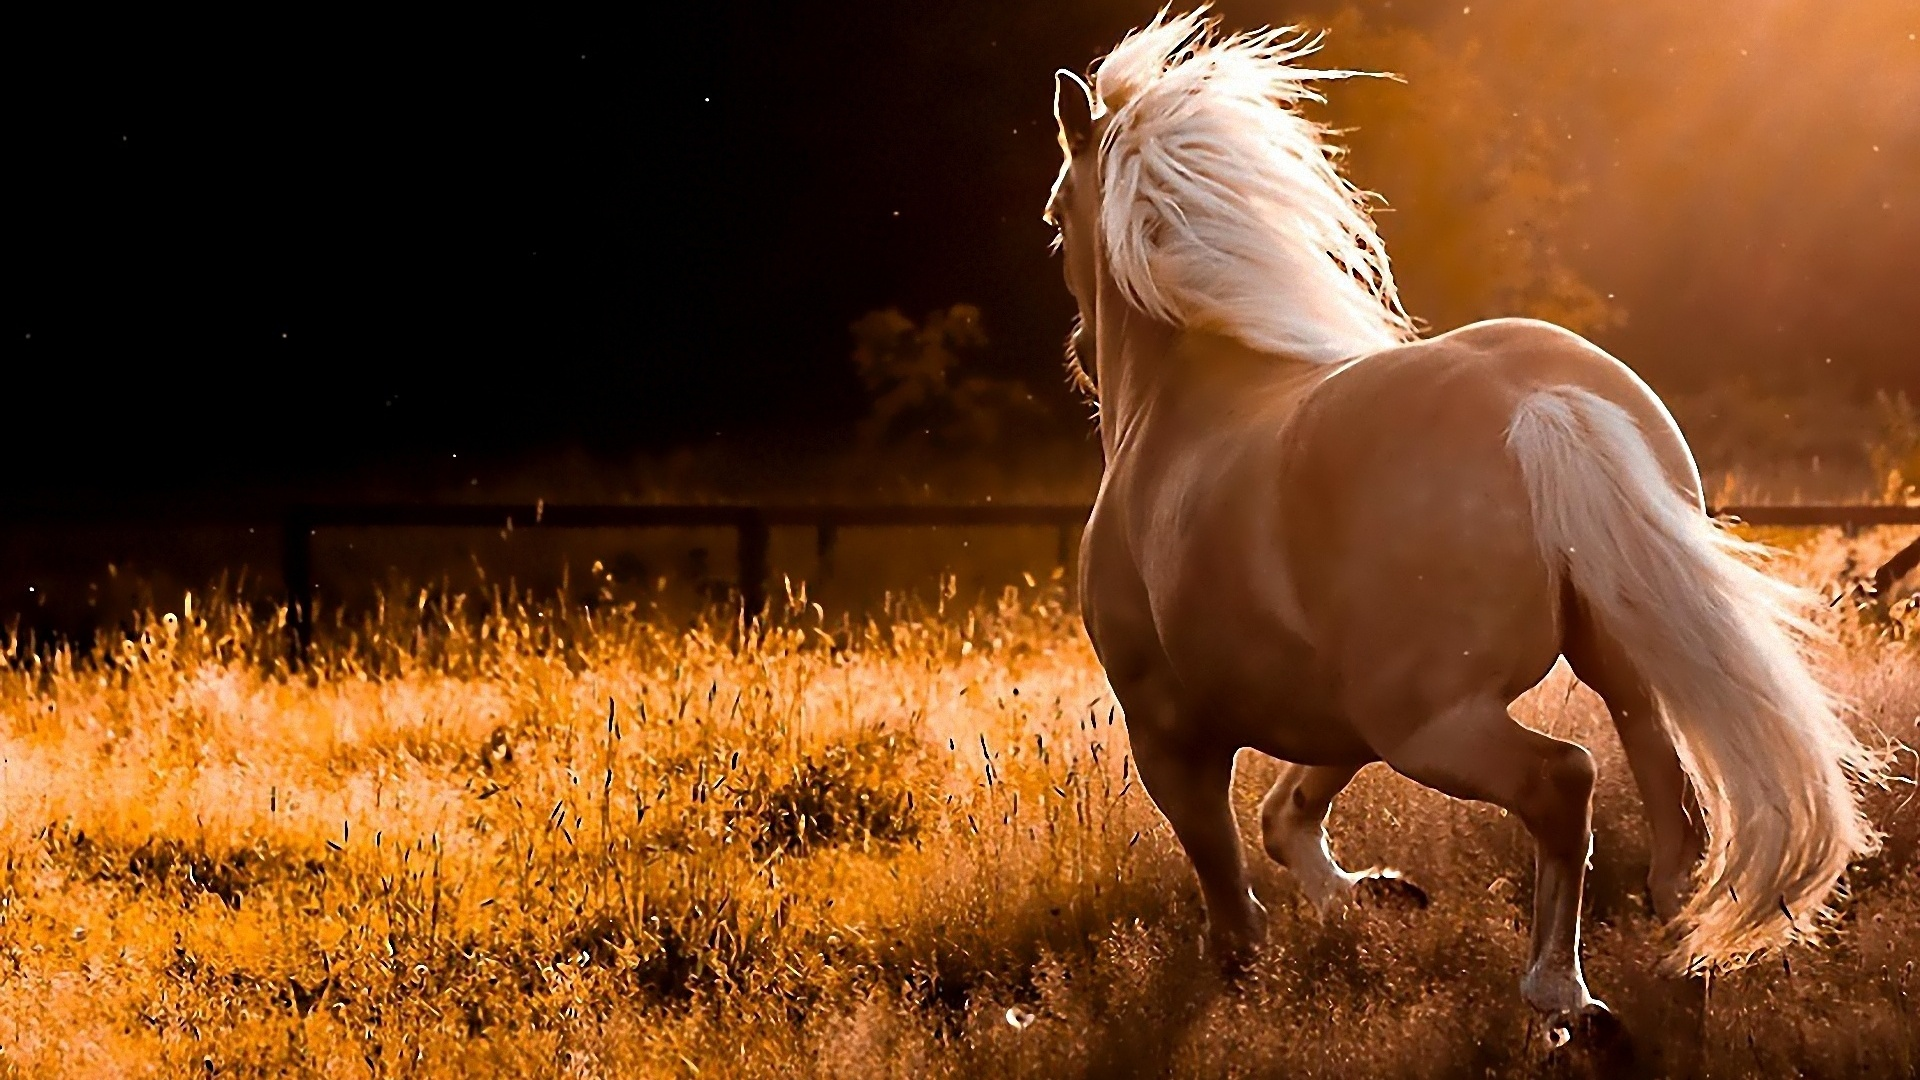 horse wallpapers nice